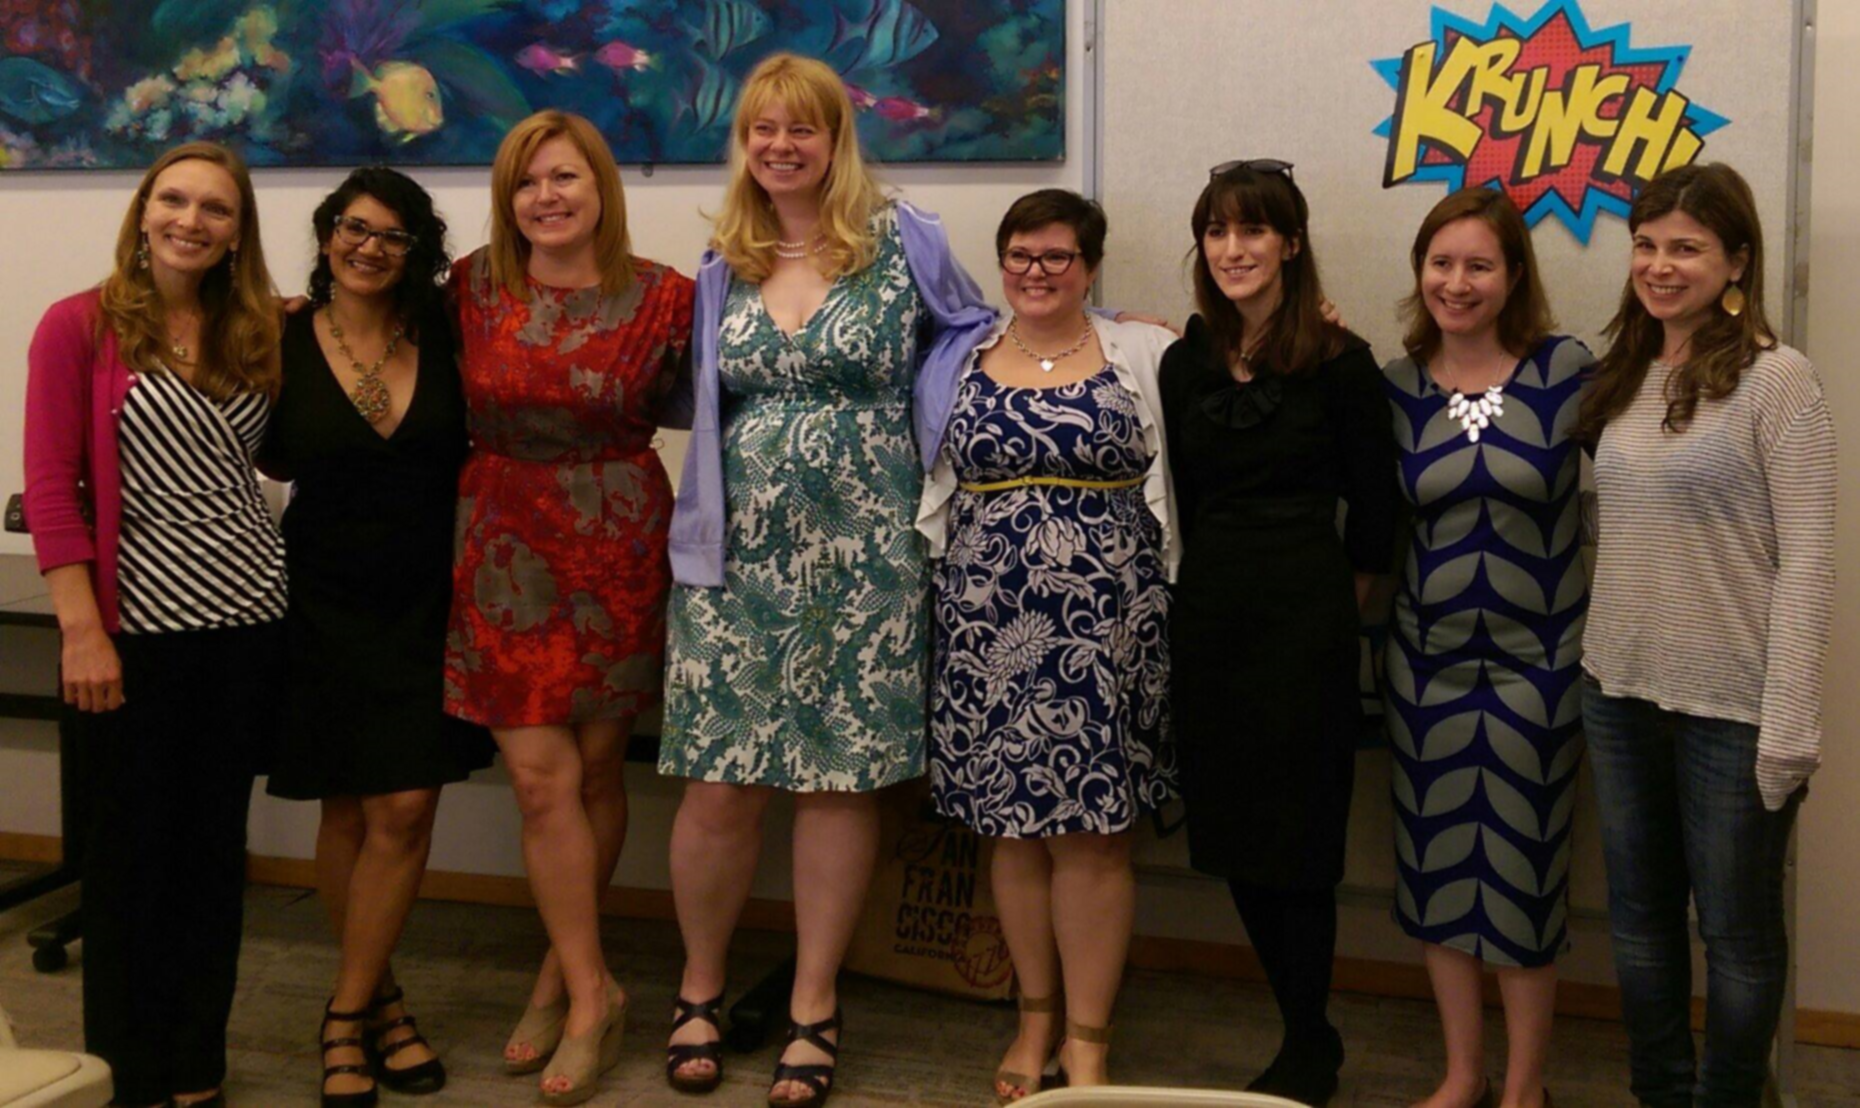 Left to right: Juliette Sobanet, Cindy Arora, Liz Fenton, Anna Garner, Lucie Simone, Nancy Scrofano (me), Lisa Doyle, Laura Dave